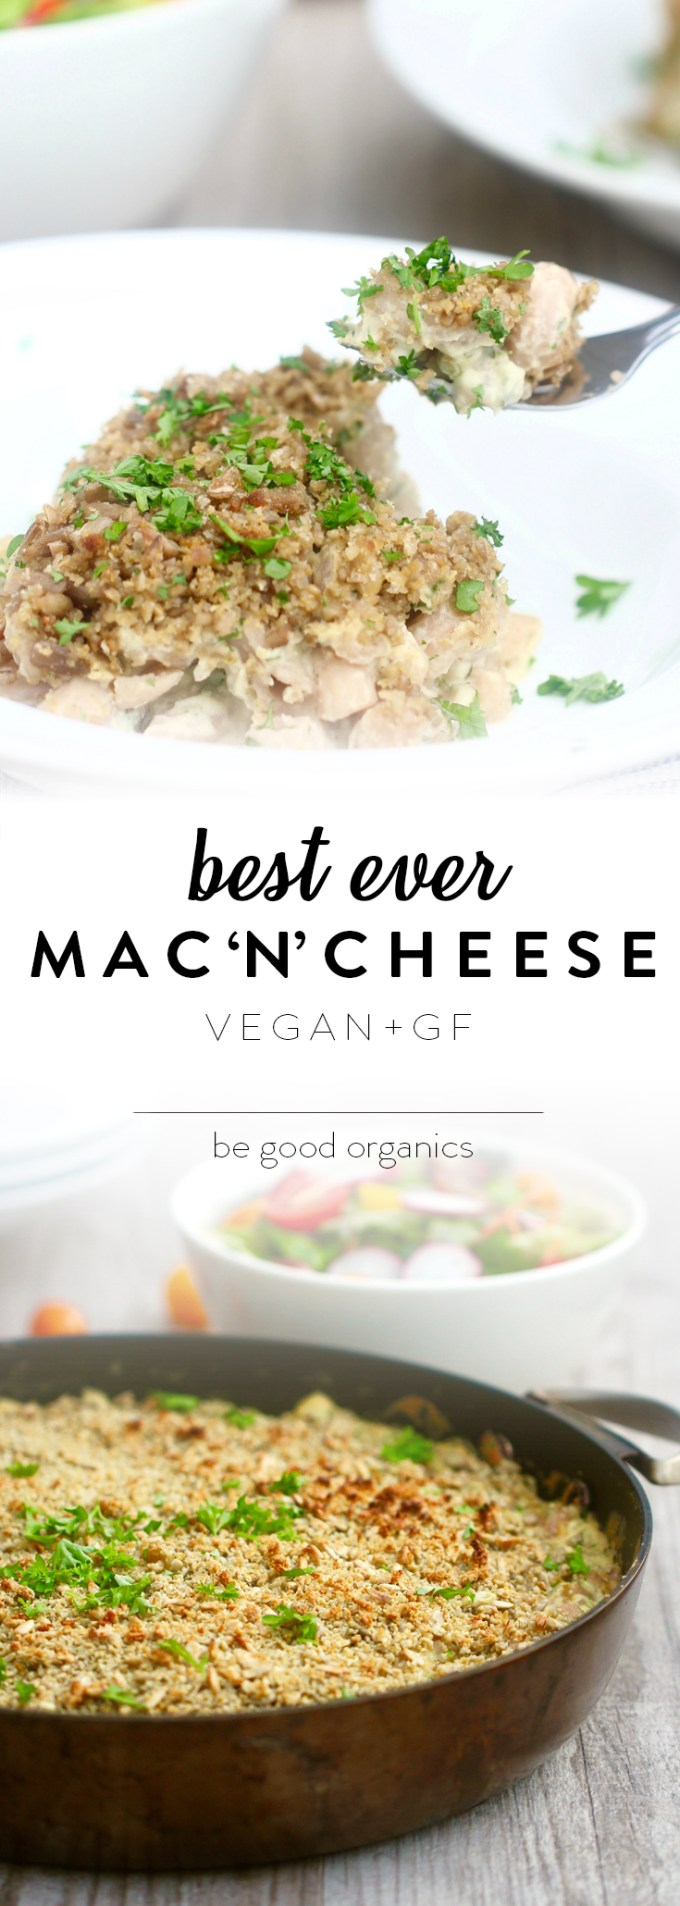 The best mac n cheese ever! Vegan, gluten free, super flavoursome, healthy, light on the waistline, and with a secret vegetable-based sauce ingredient!